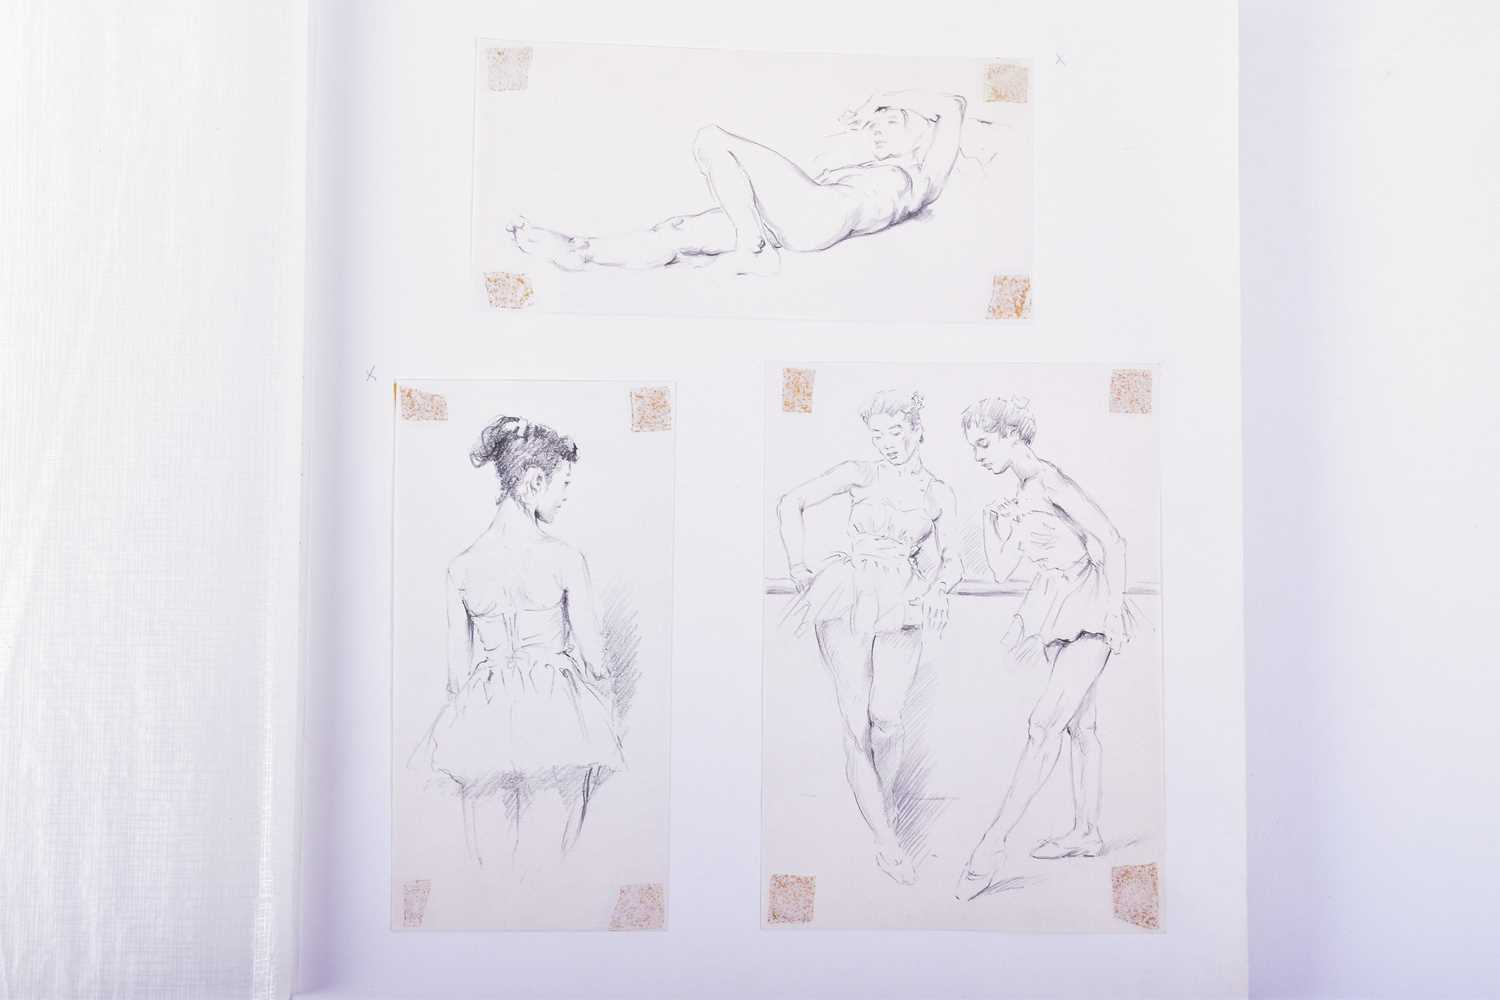 Lot 56 - Franco Matania (1922-2006) Italian/British, a finely bound album of original sketches and